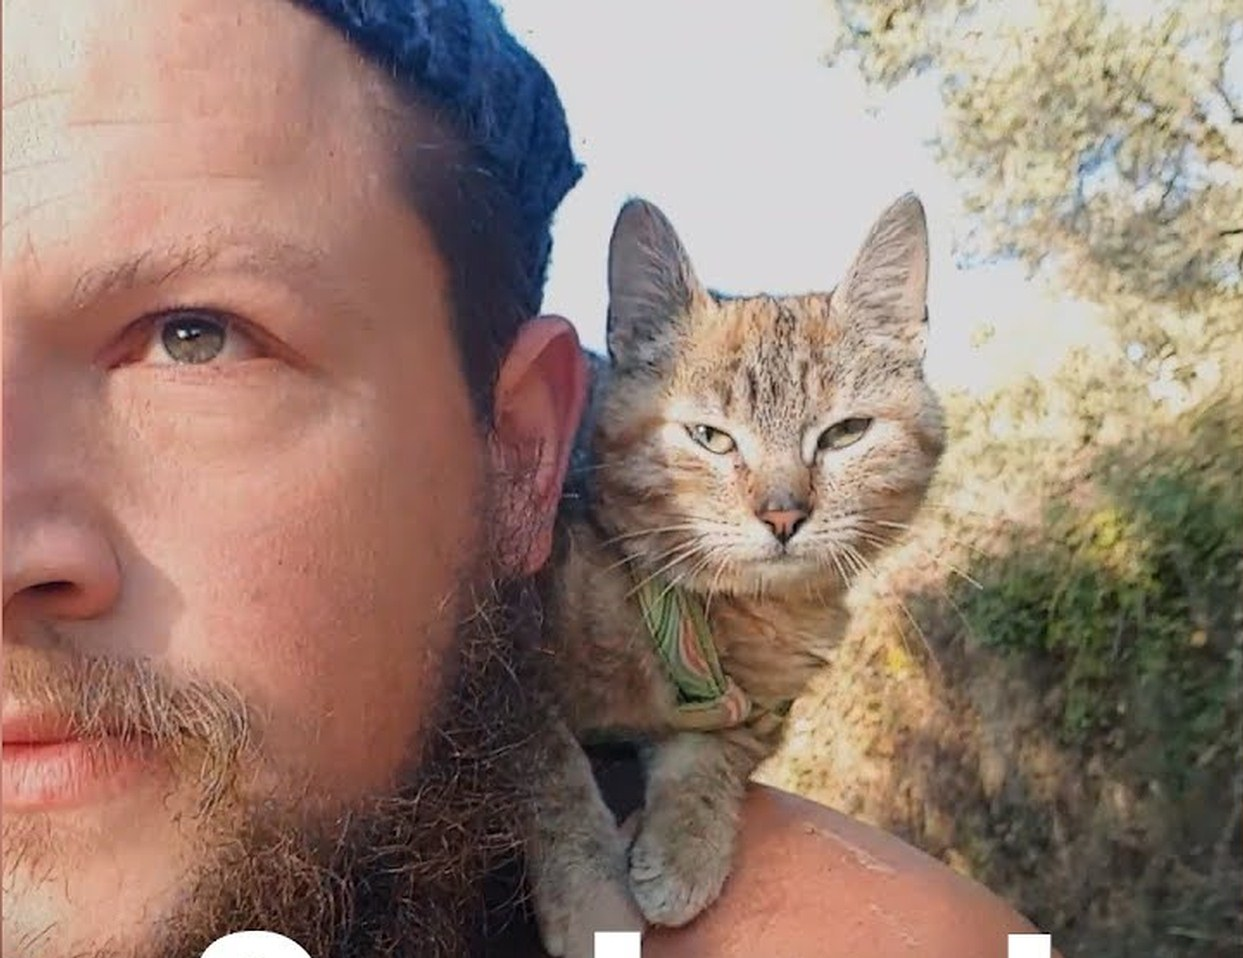 A cyclist traveling around the world finds a great travel companion, a stray kitten